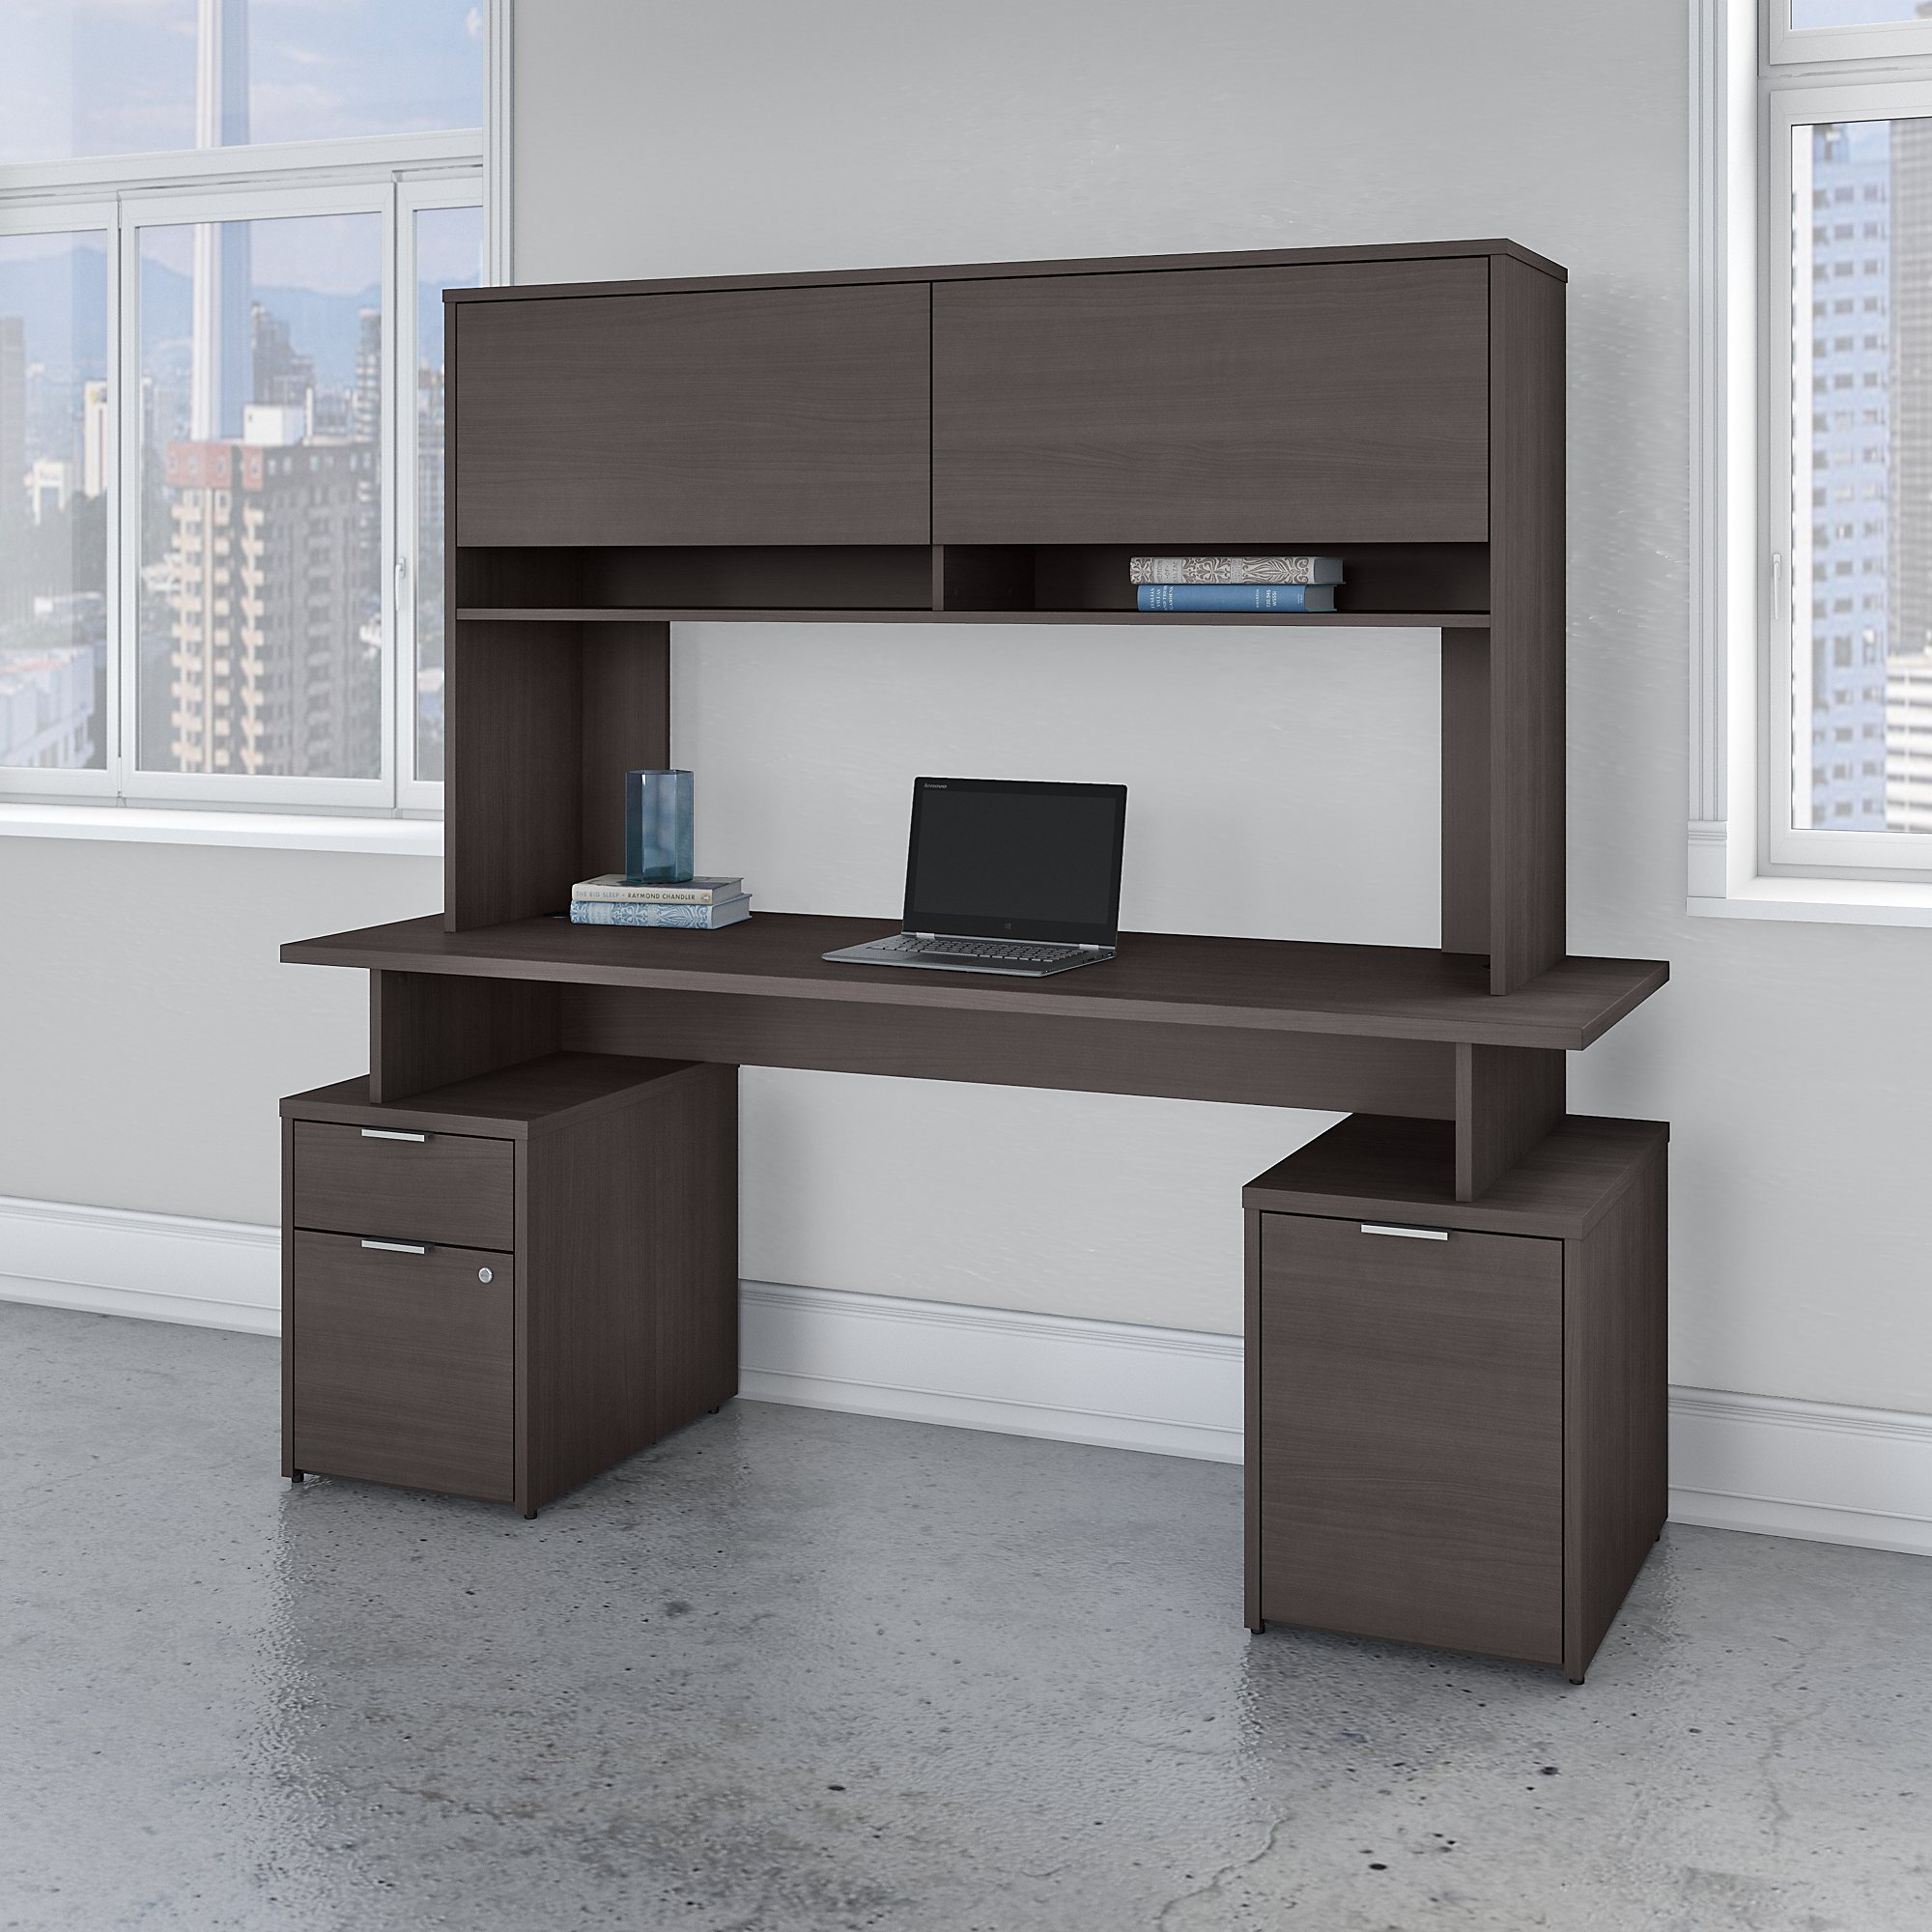 Bush Business Furniture Jamestown 72W Desk with Drawers, Storage Cabinet and Hutch